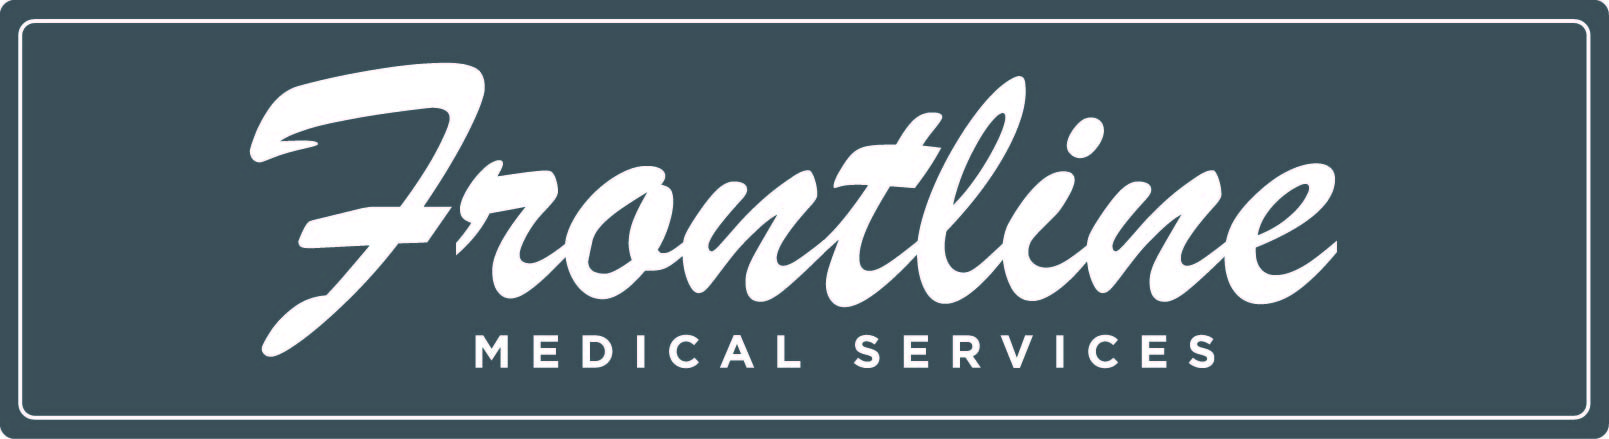 Frontline Medical Services Logo